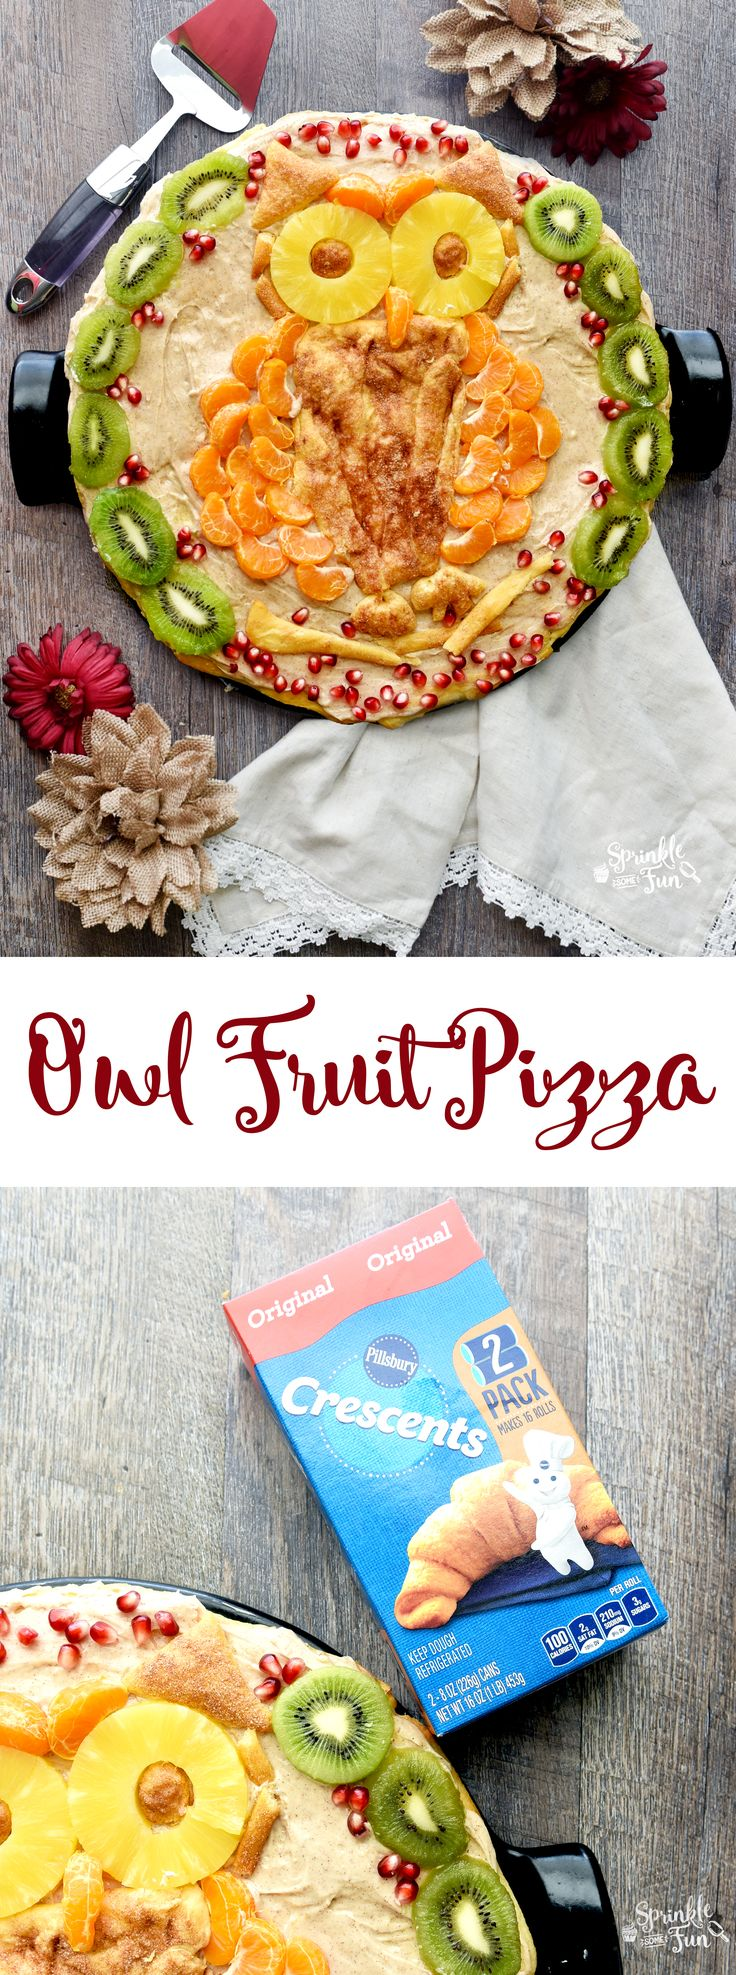 This Owl Fruit Pizza is a fun twist on the classic!  I also added some cinnamon to the mix which will be perfect for fall and winter holidays.  Isn't the owl so cute? @Pillsbury #ItsBakingSeason AD